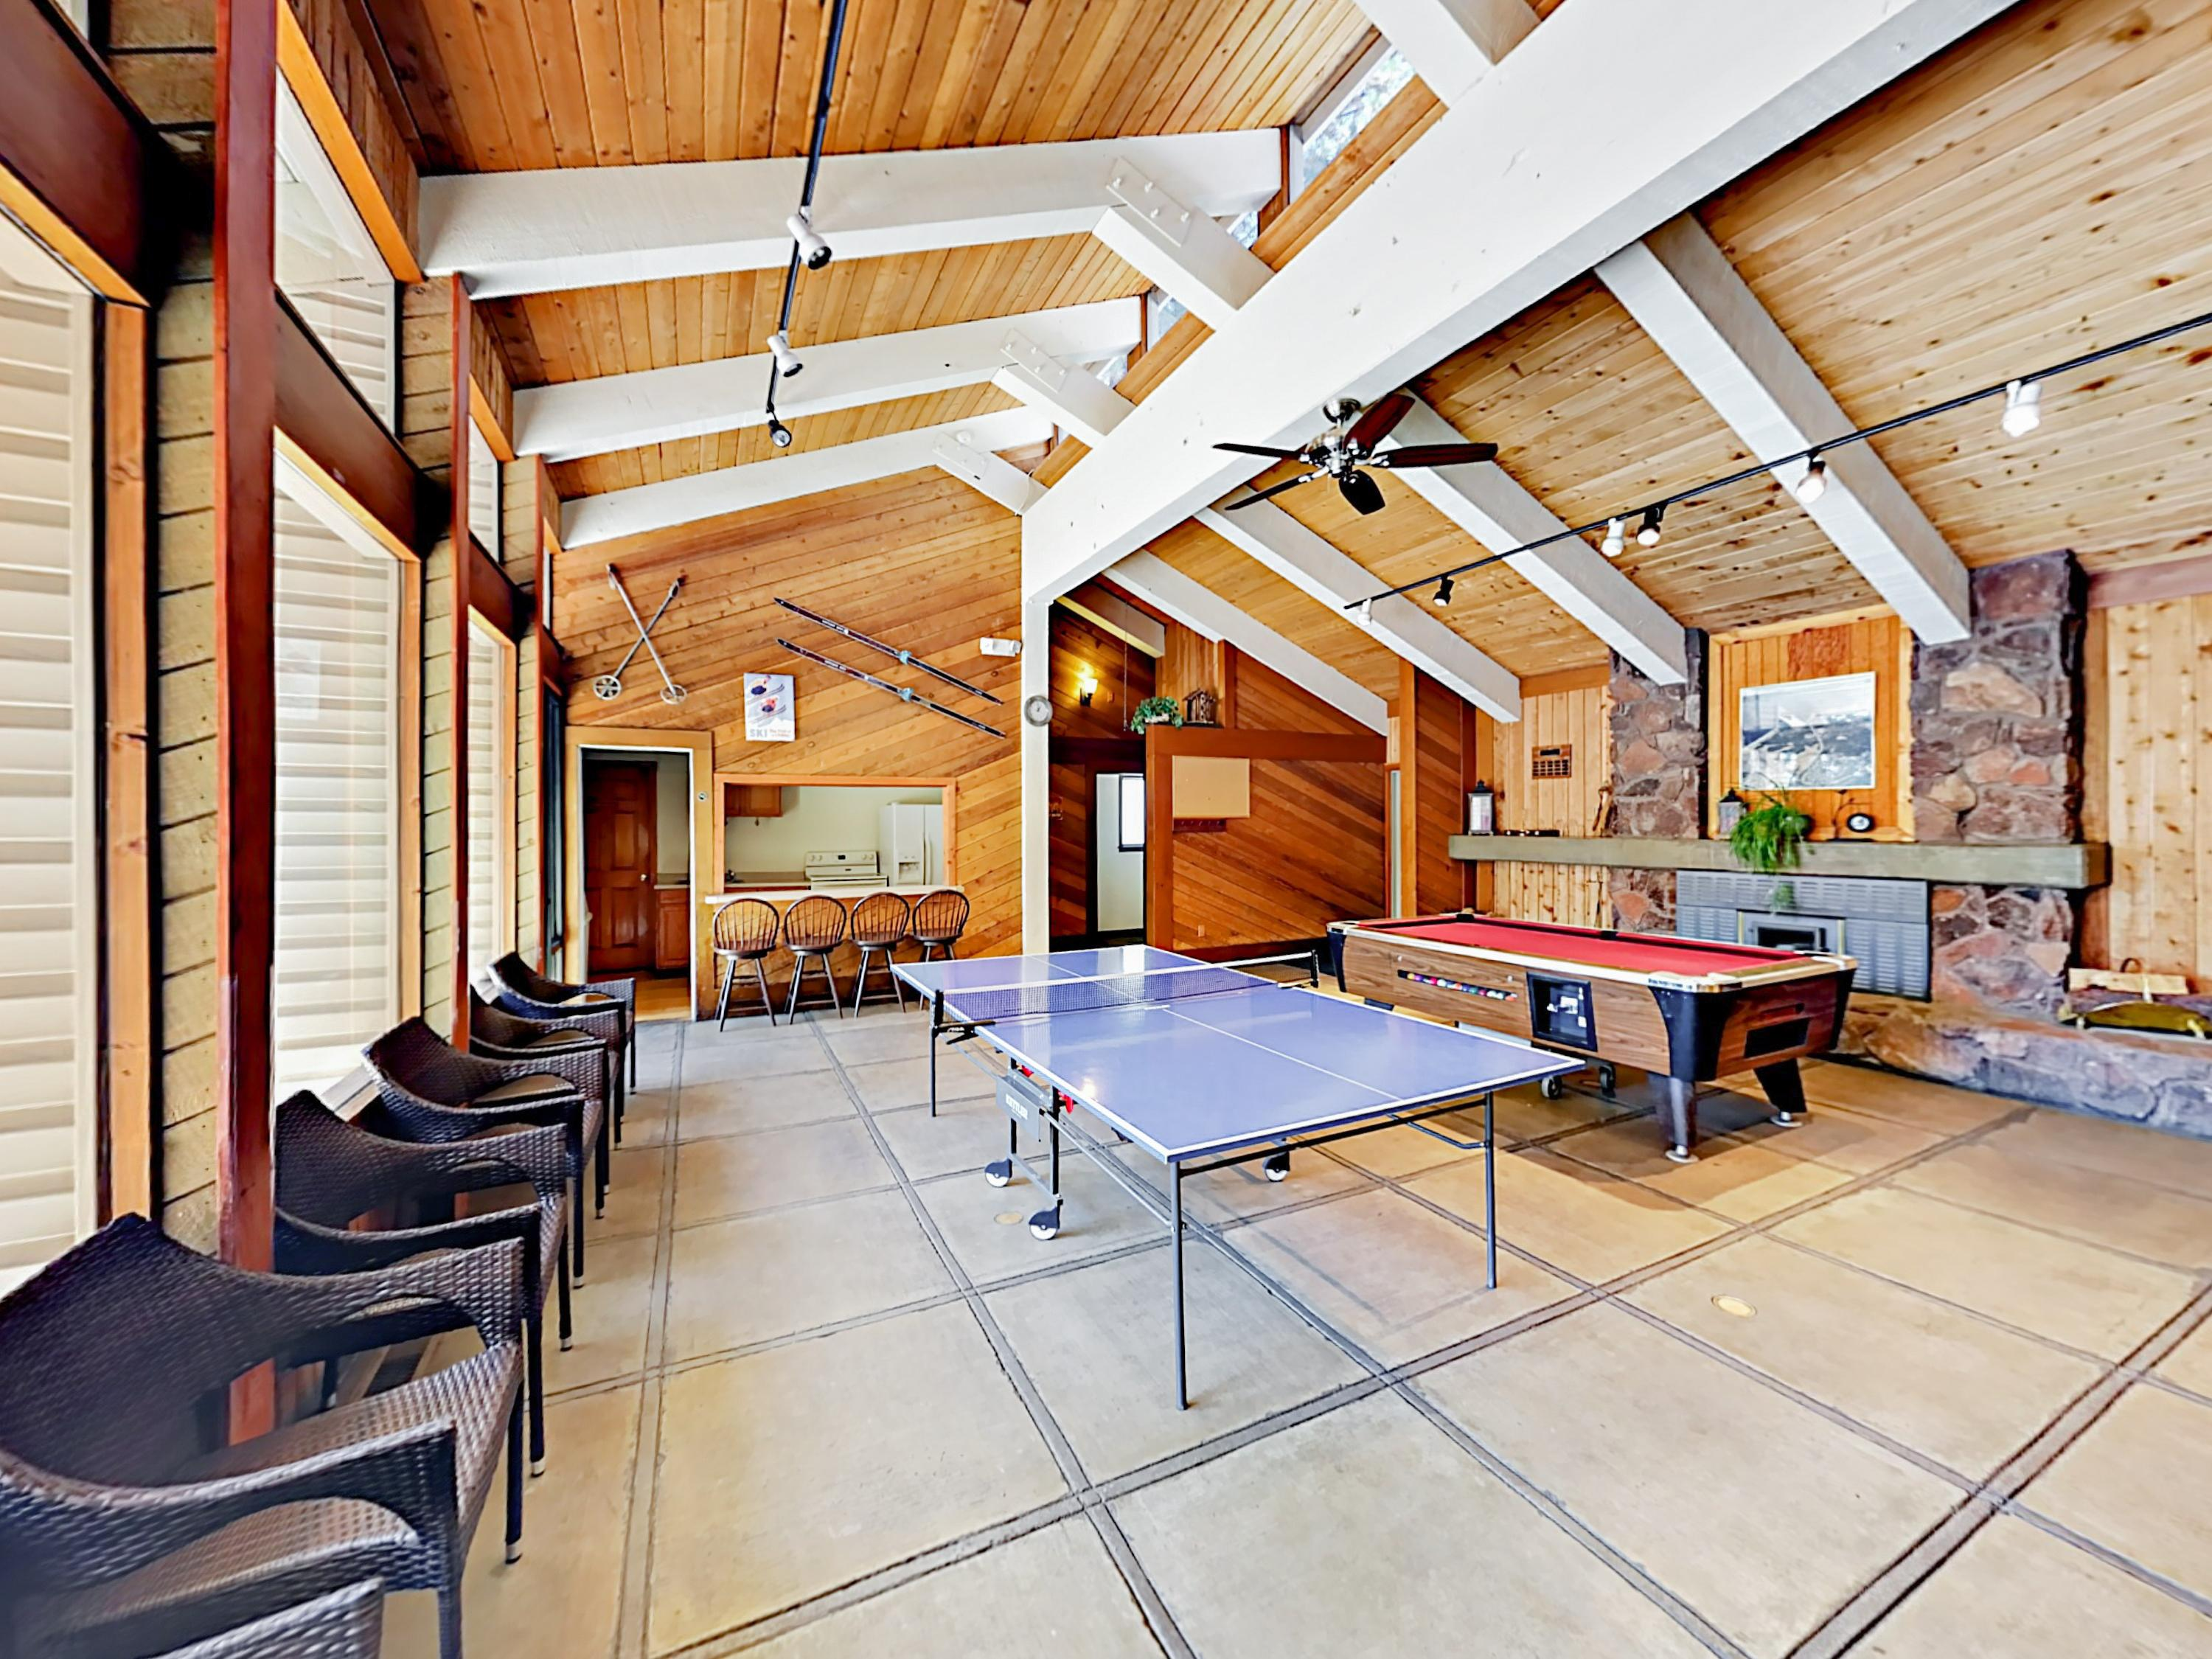 Lake Village amenities include an airy clubhouse with plenty of space to kick back.